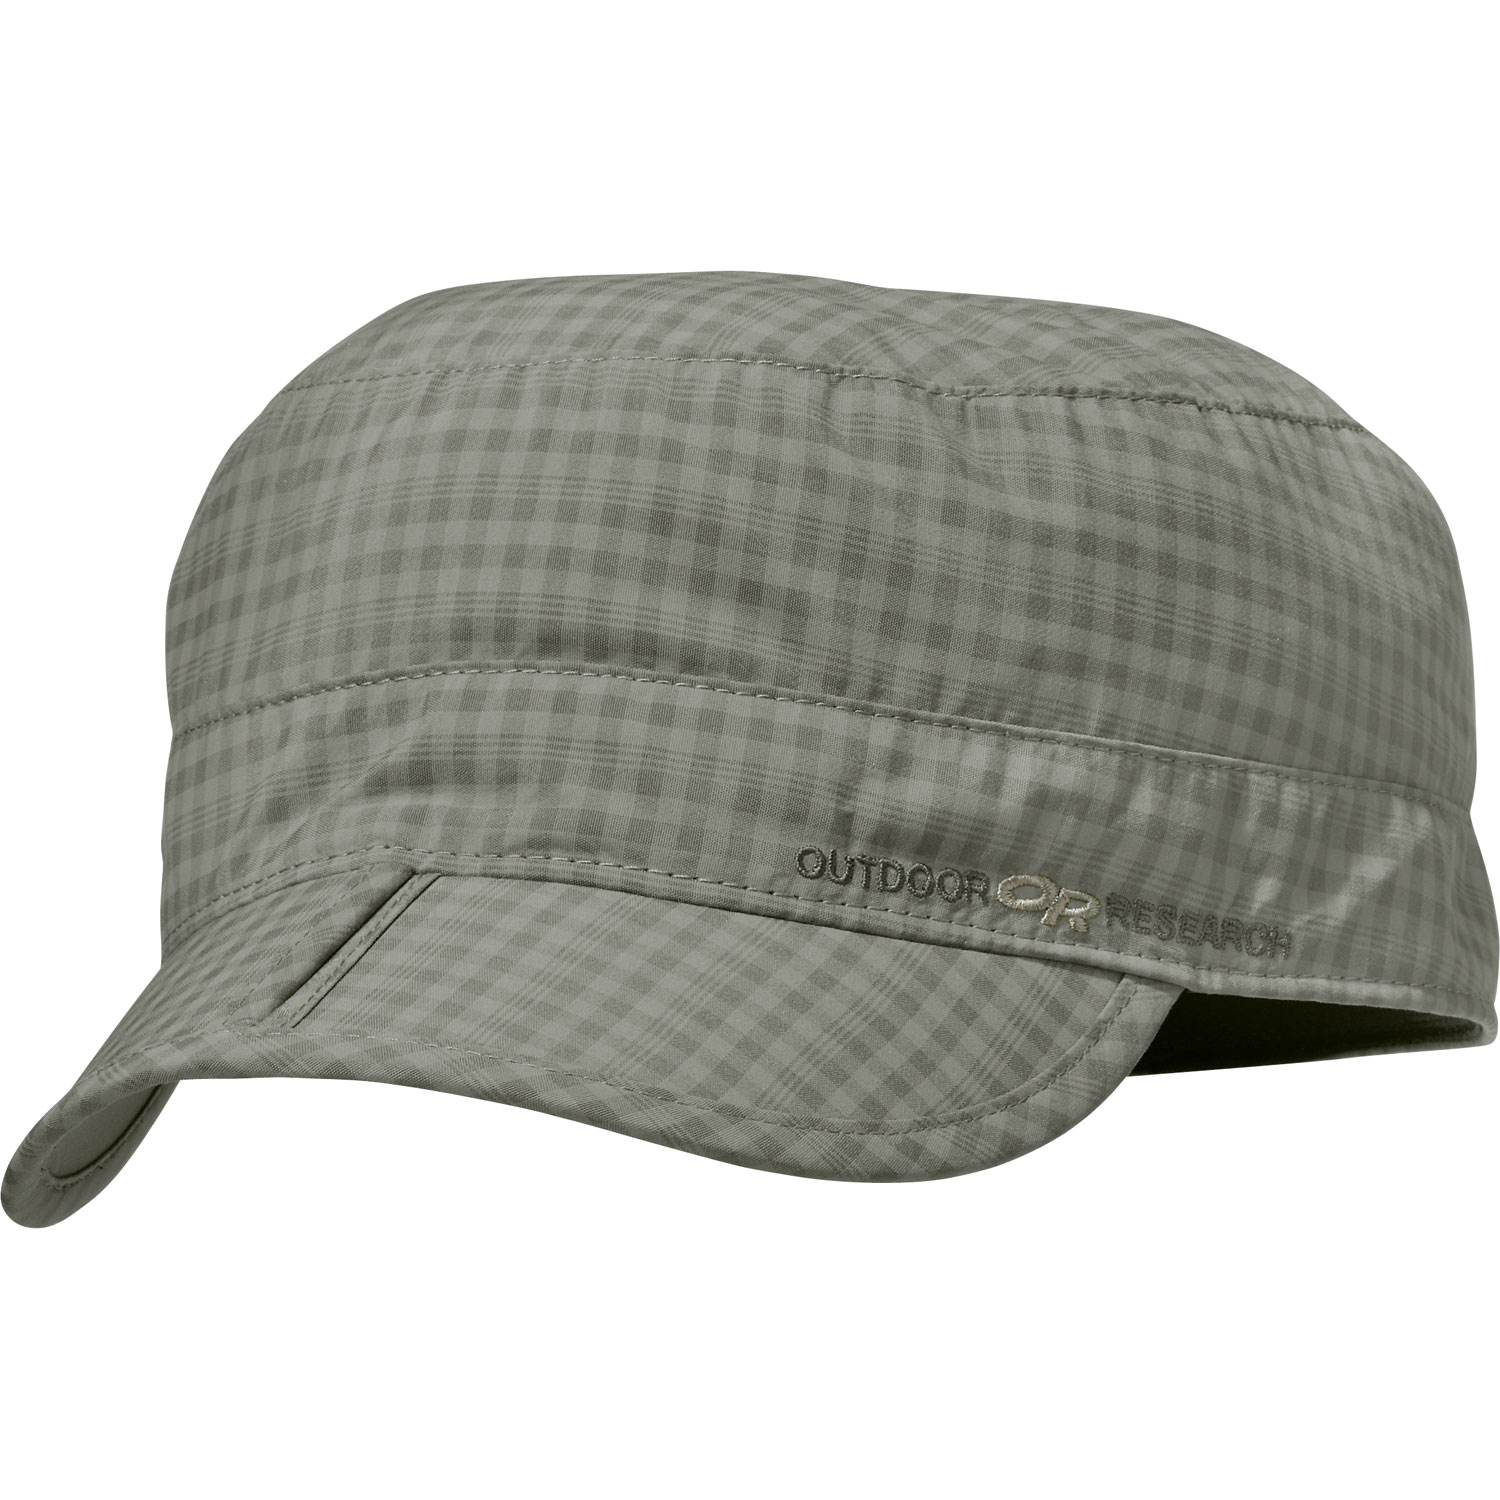 Key Features of the Outdoor Research Radar Pocket Hat: Supplex® nylon fabric; UPF 30 + TransAction™ headband + Folding brim for easy storage in pocket - $17.95